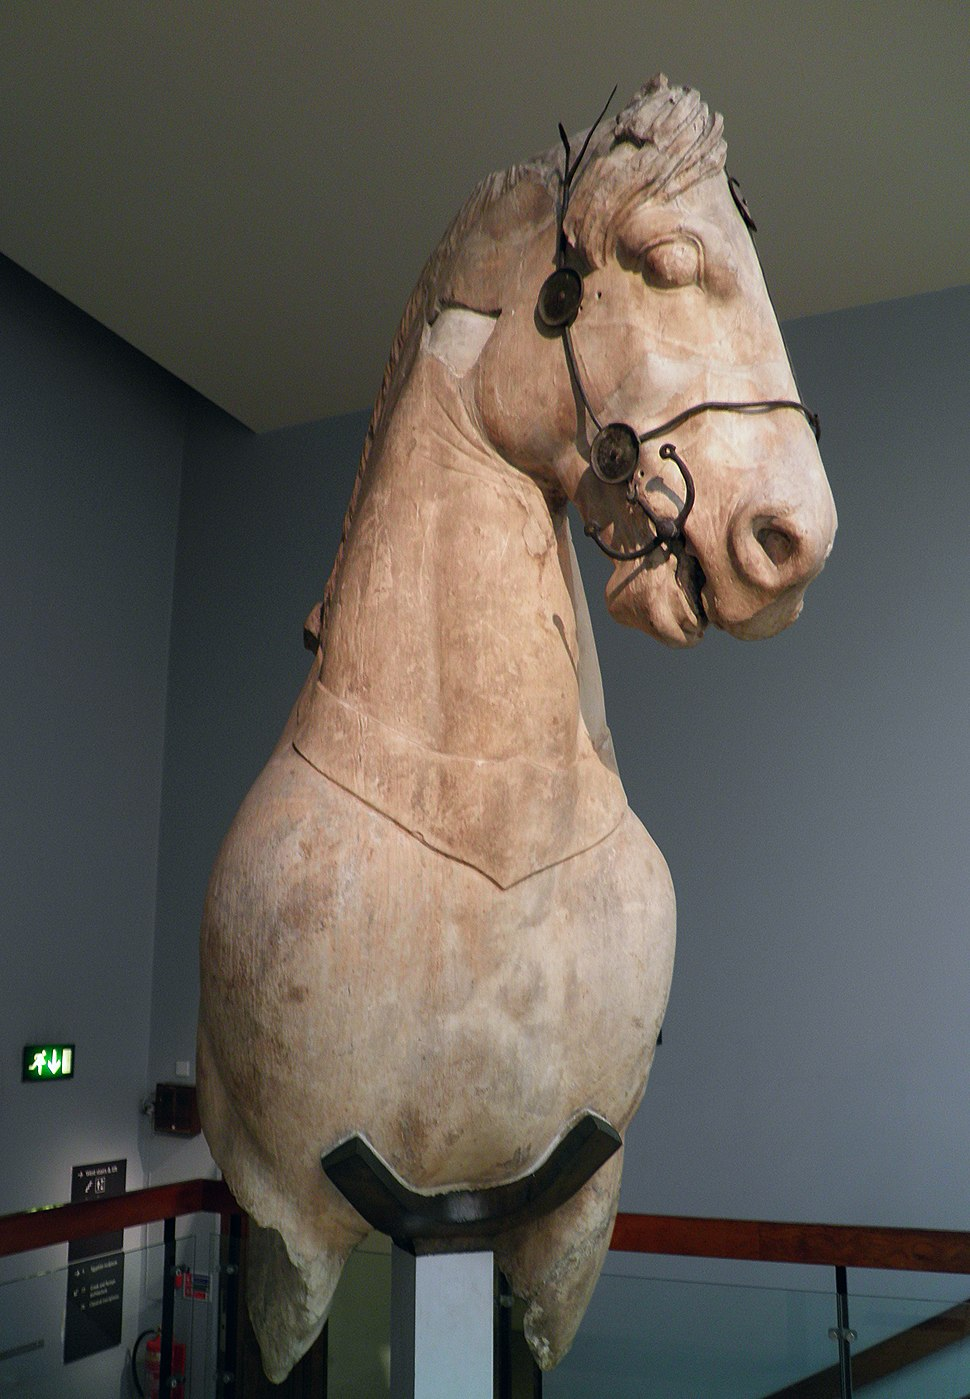 Fragmentary horse from the colossal four-horses chariot group which topped the podium of the Mausoleum at Halicarnassus, Mausoleum at Halicarnassus, British Museum (8245662728)